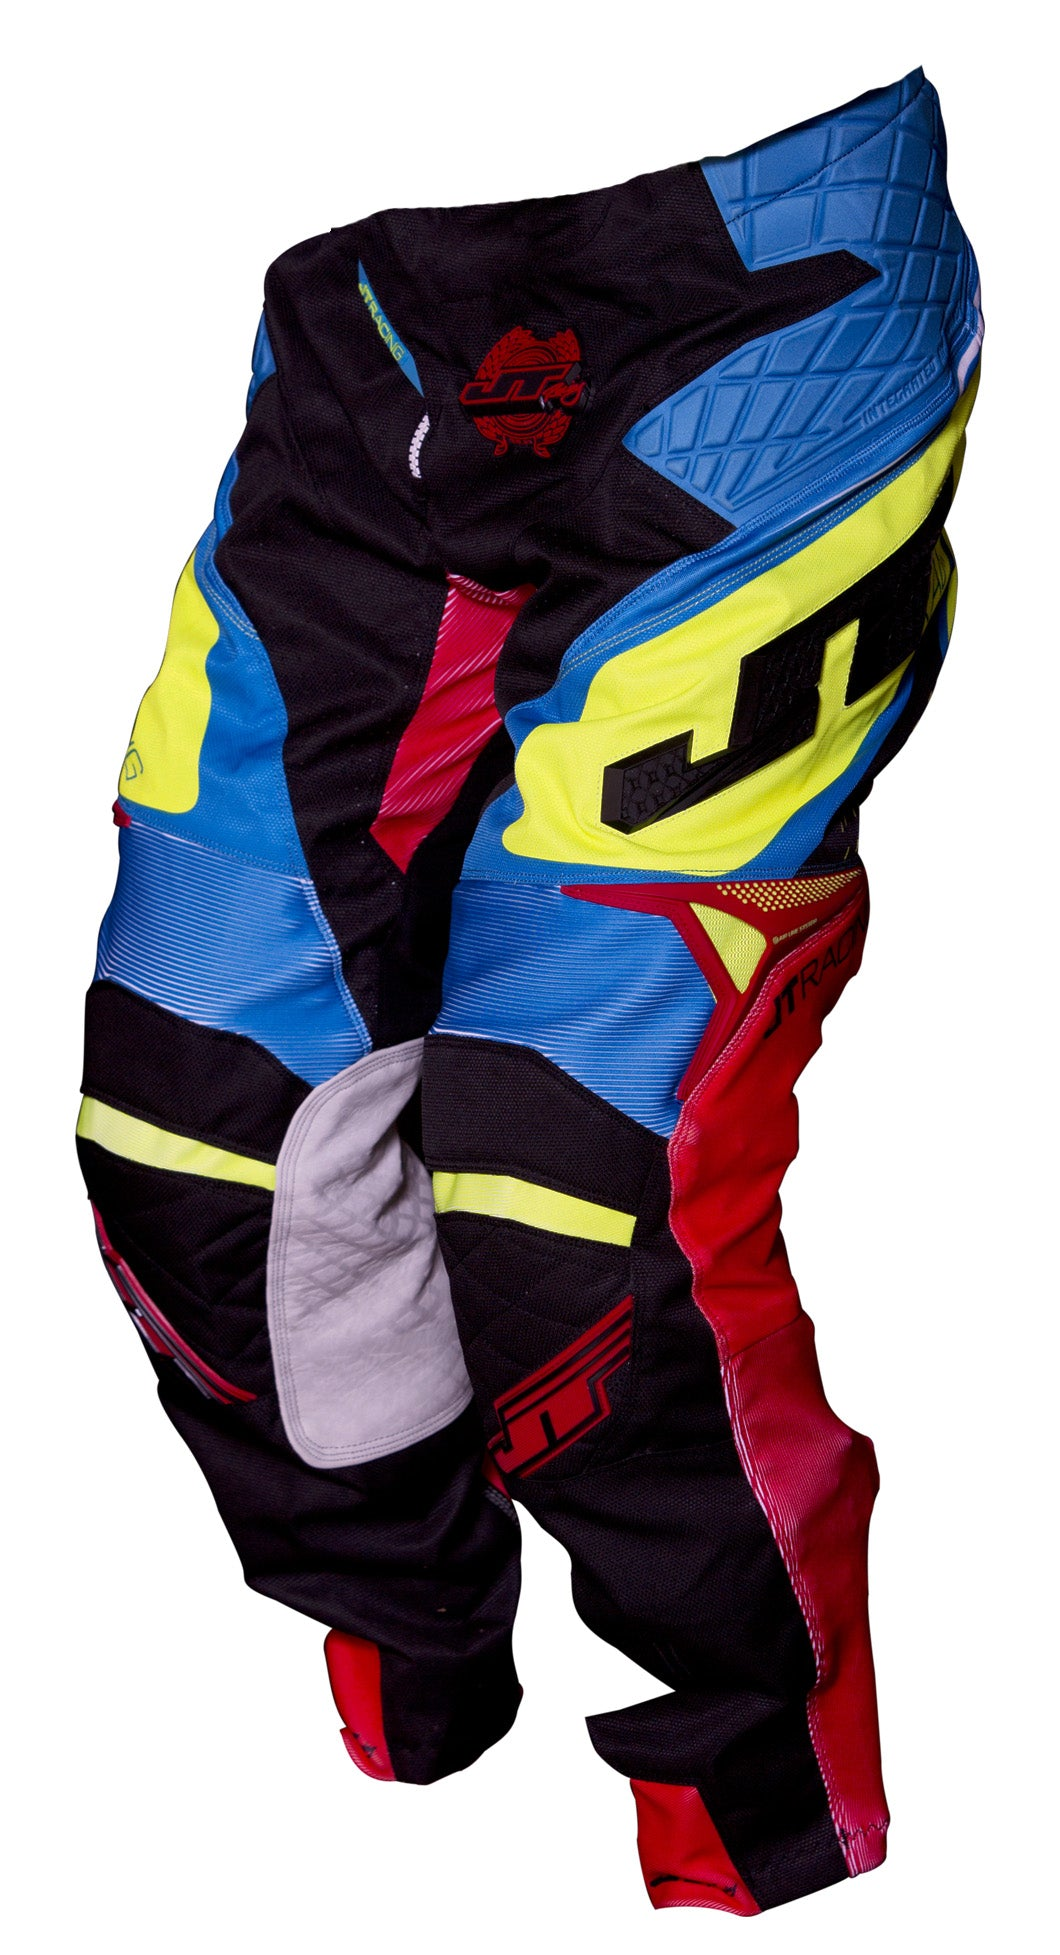 JT RACING USA ProTek Trophy pants, Black/Cyan/Yellow